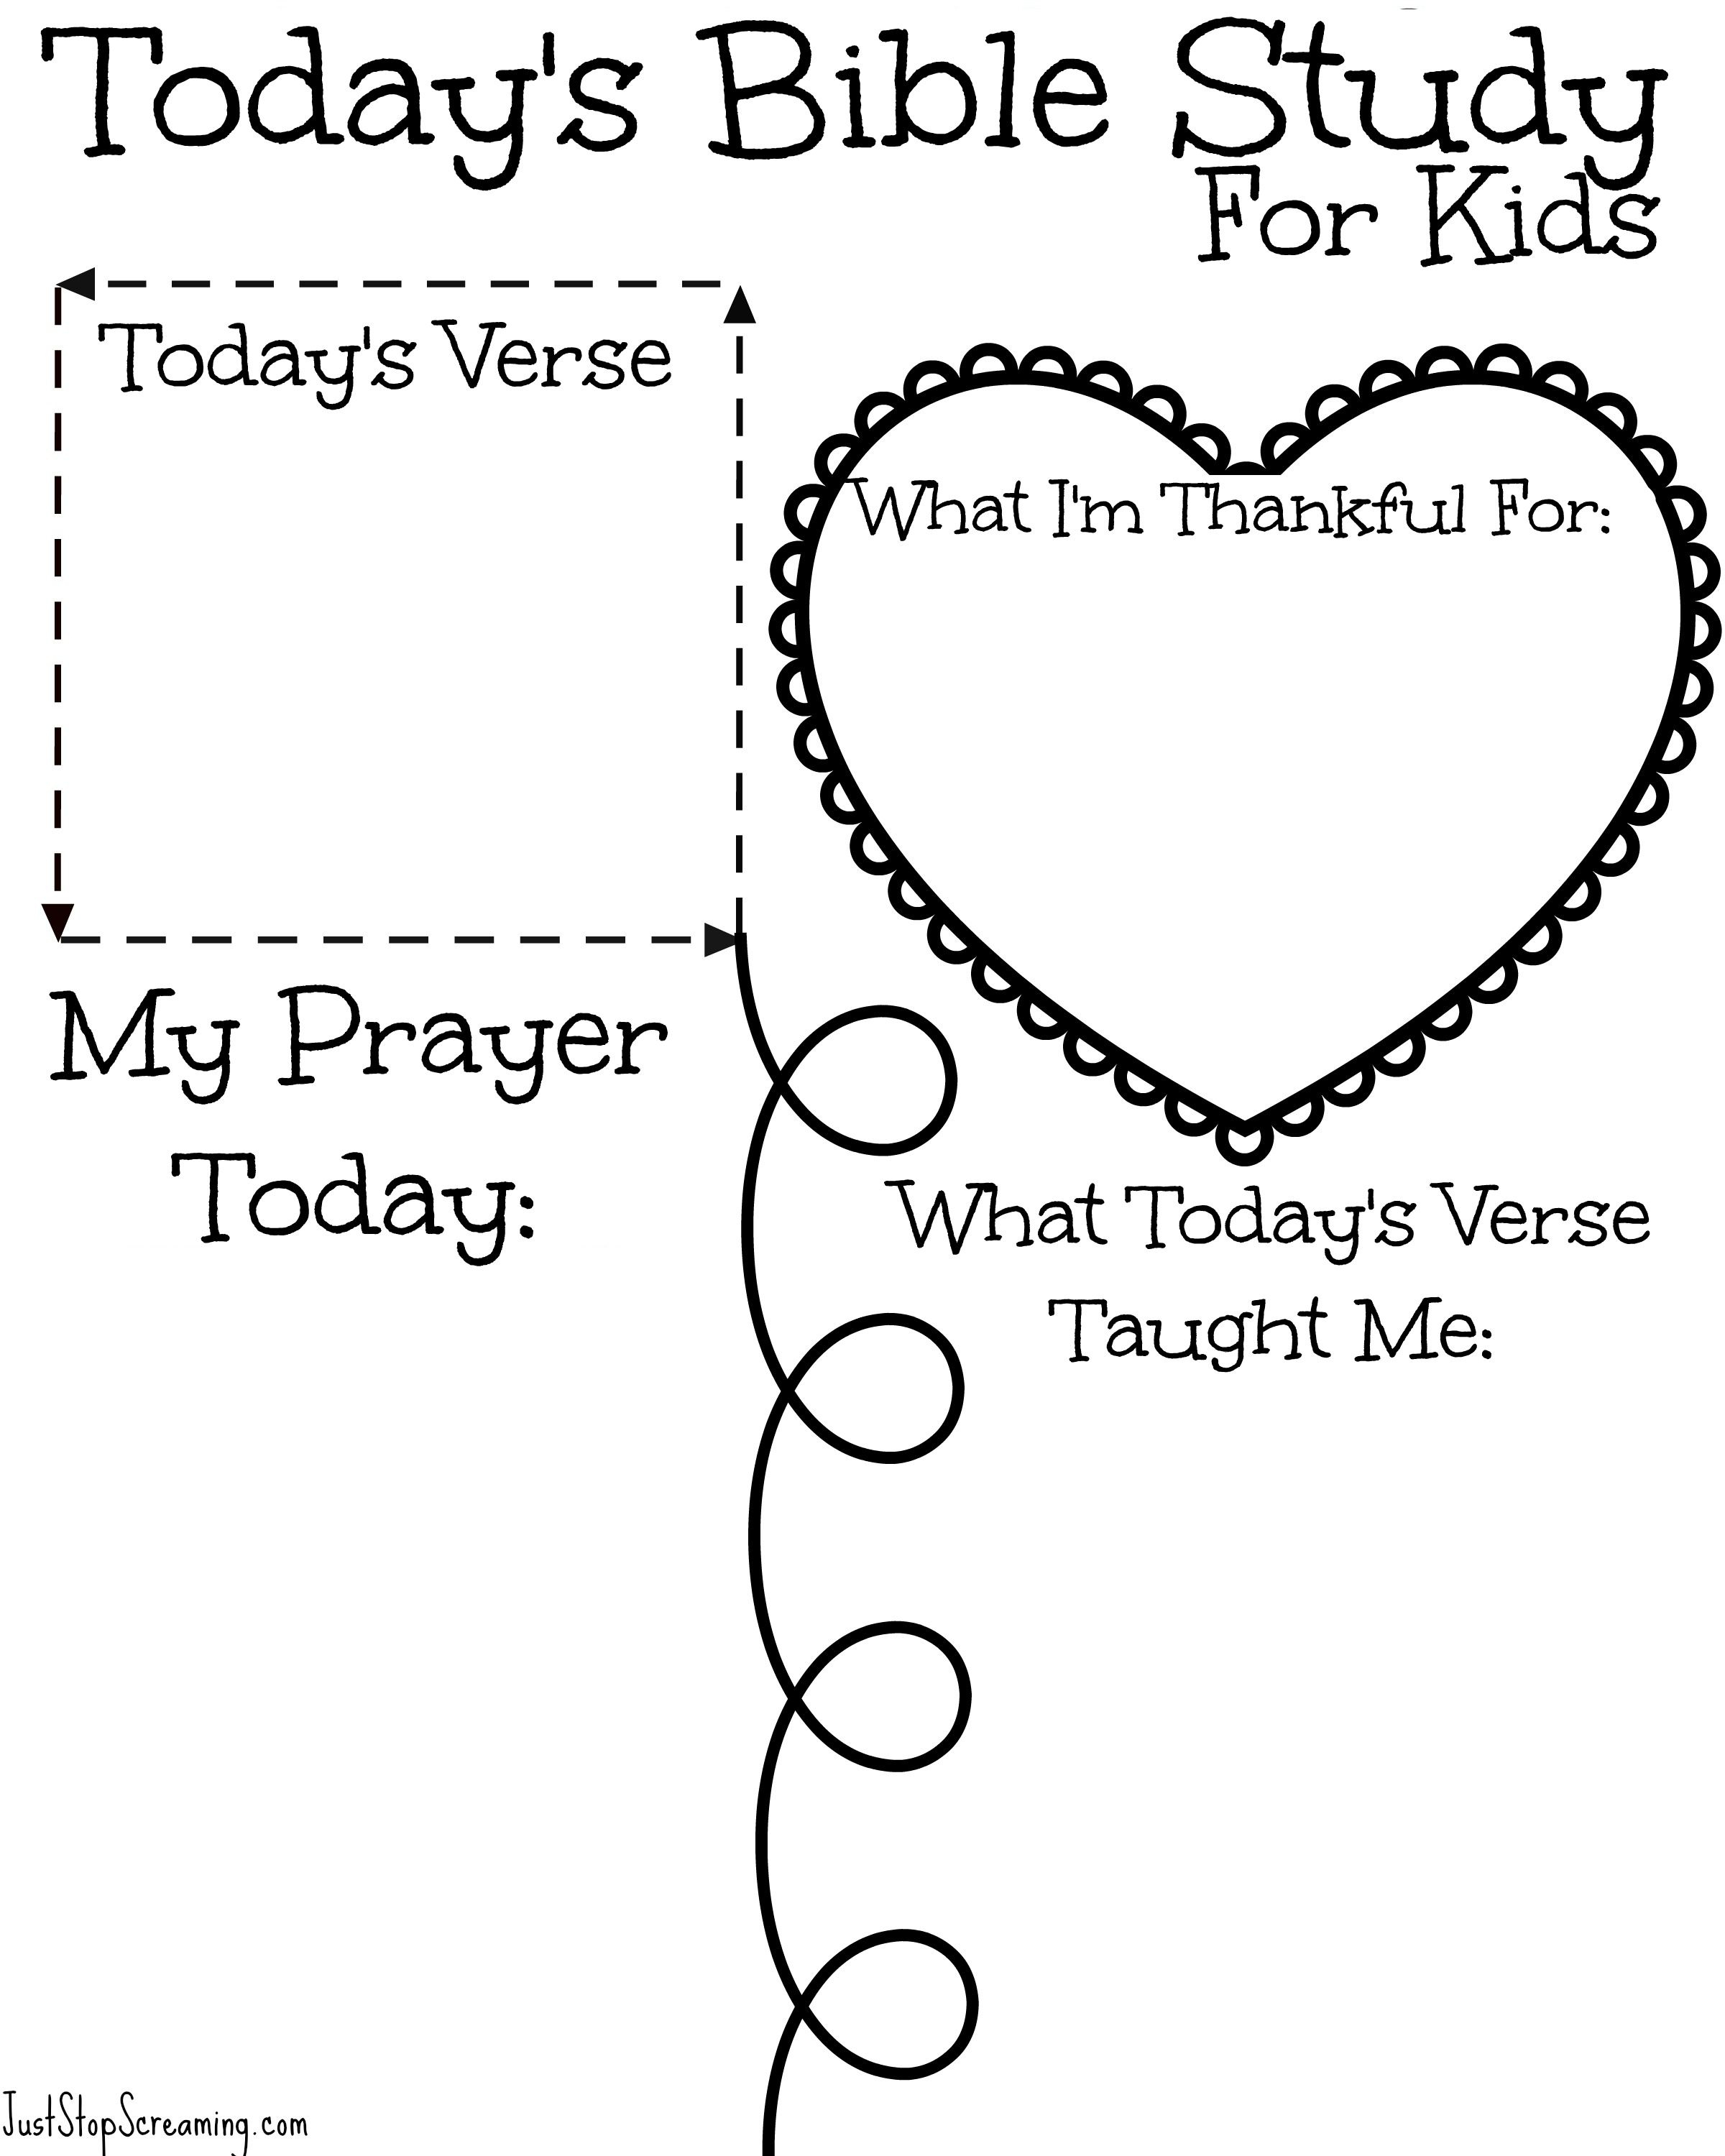 Free Bible Study Printable For Adults And Kids | Bullet Journal - Free Printable Sunday School Lessons For Youth